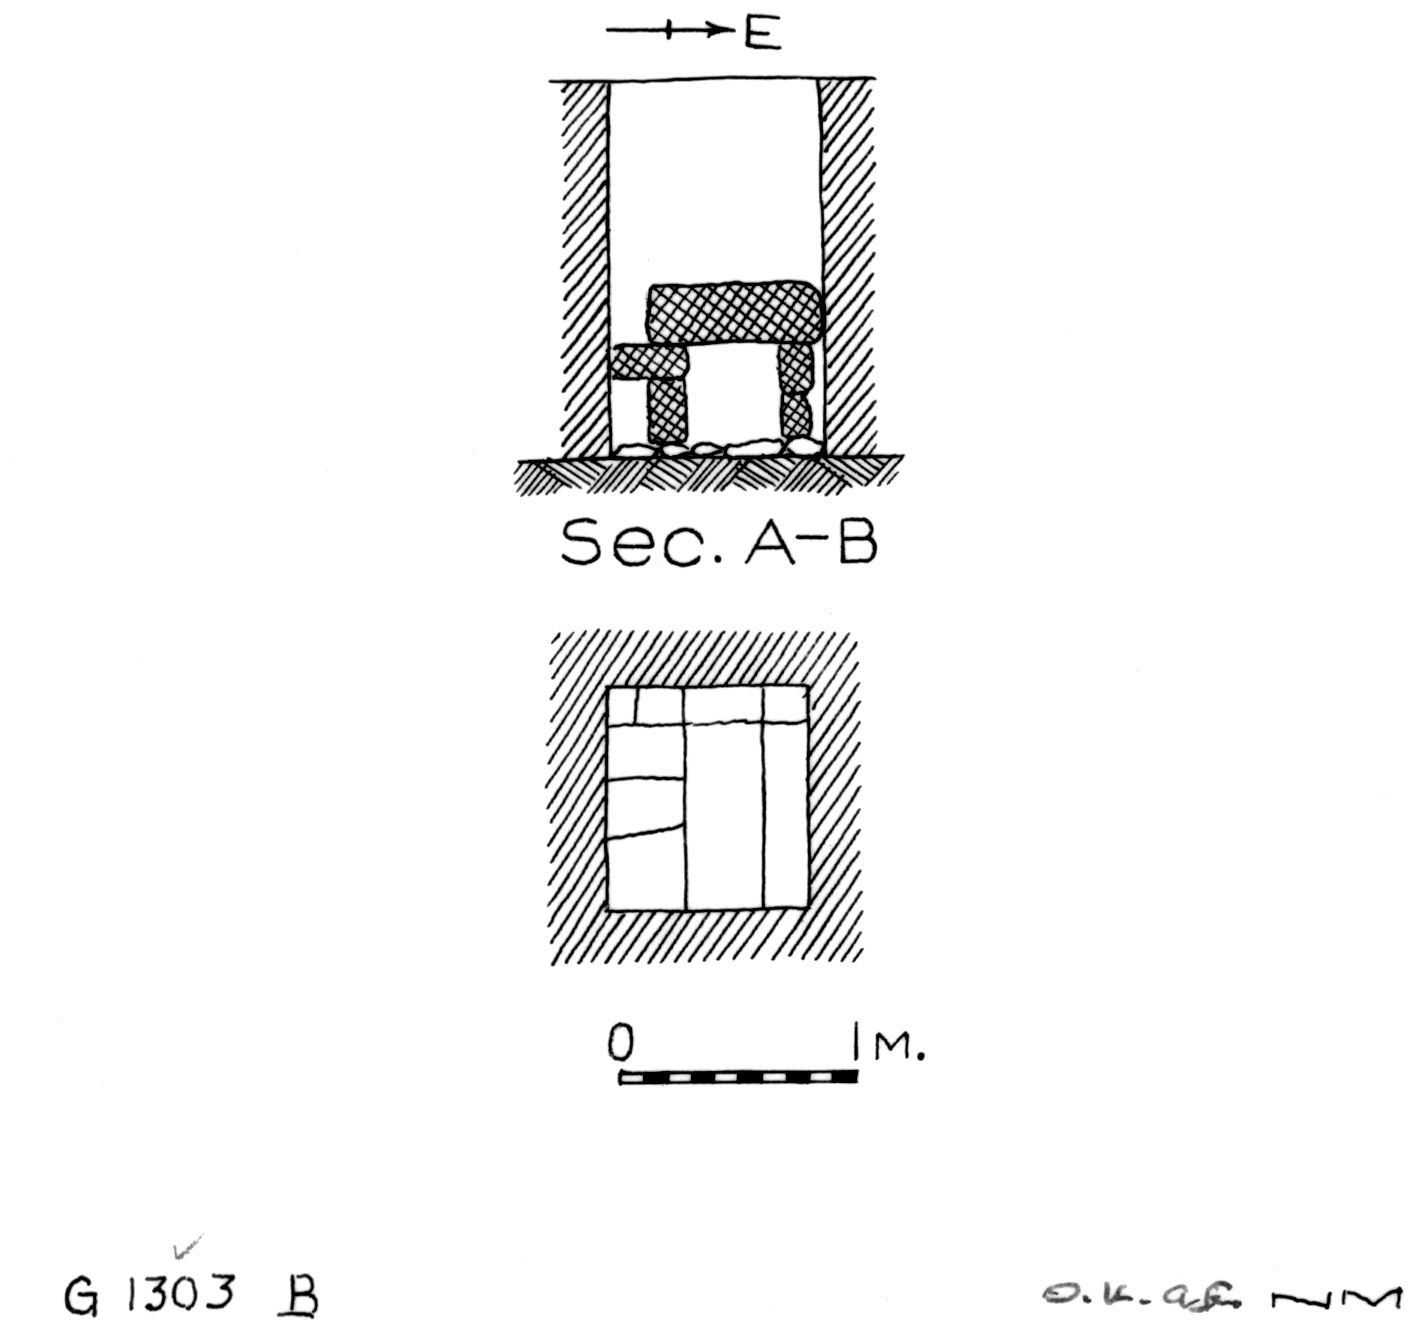 Maps and plans: G 1303, Shaft B